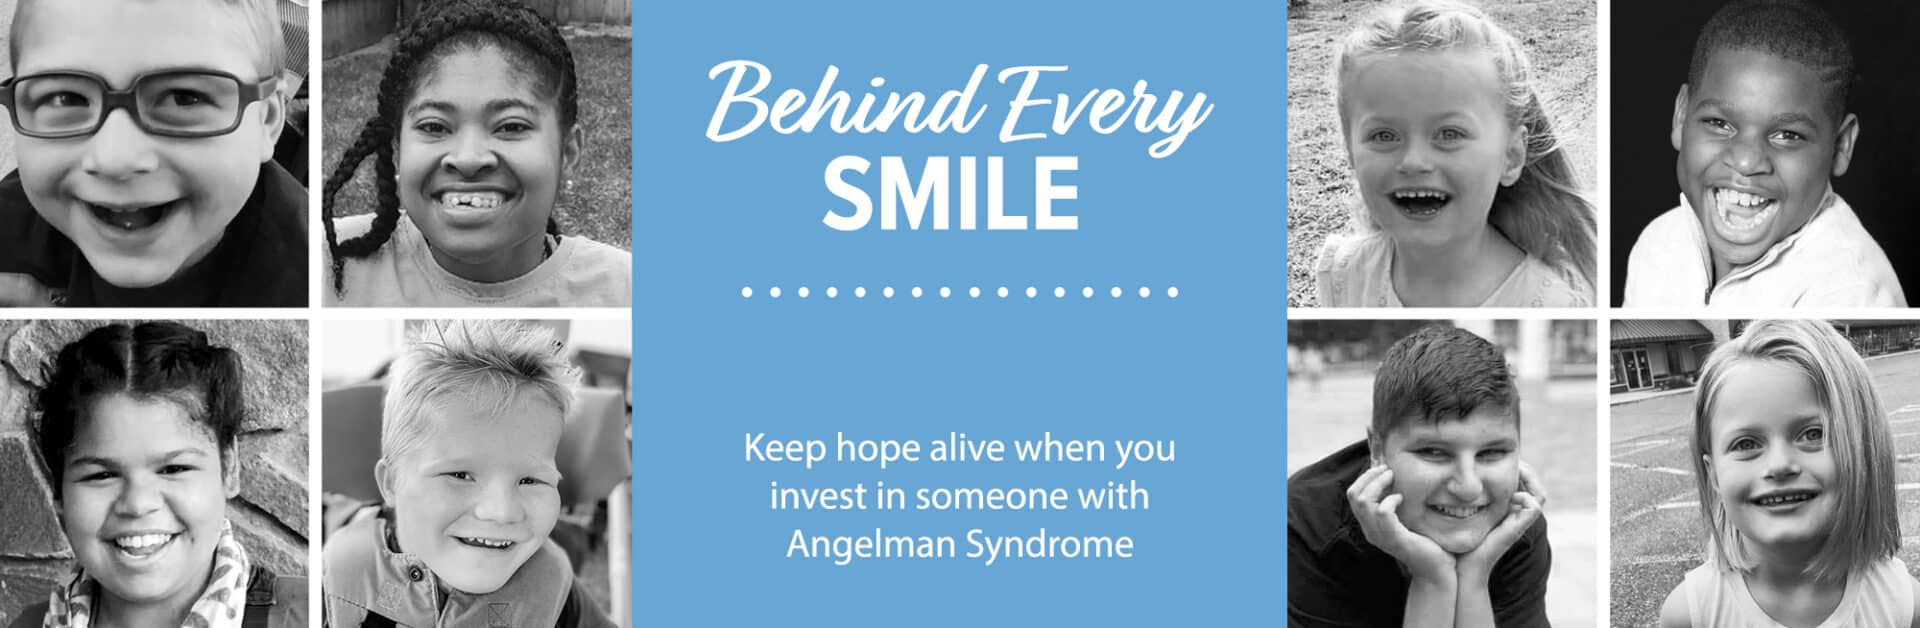 Behind Every Smile banner shows pictures of eight smiling people with Angelman syndrome